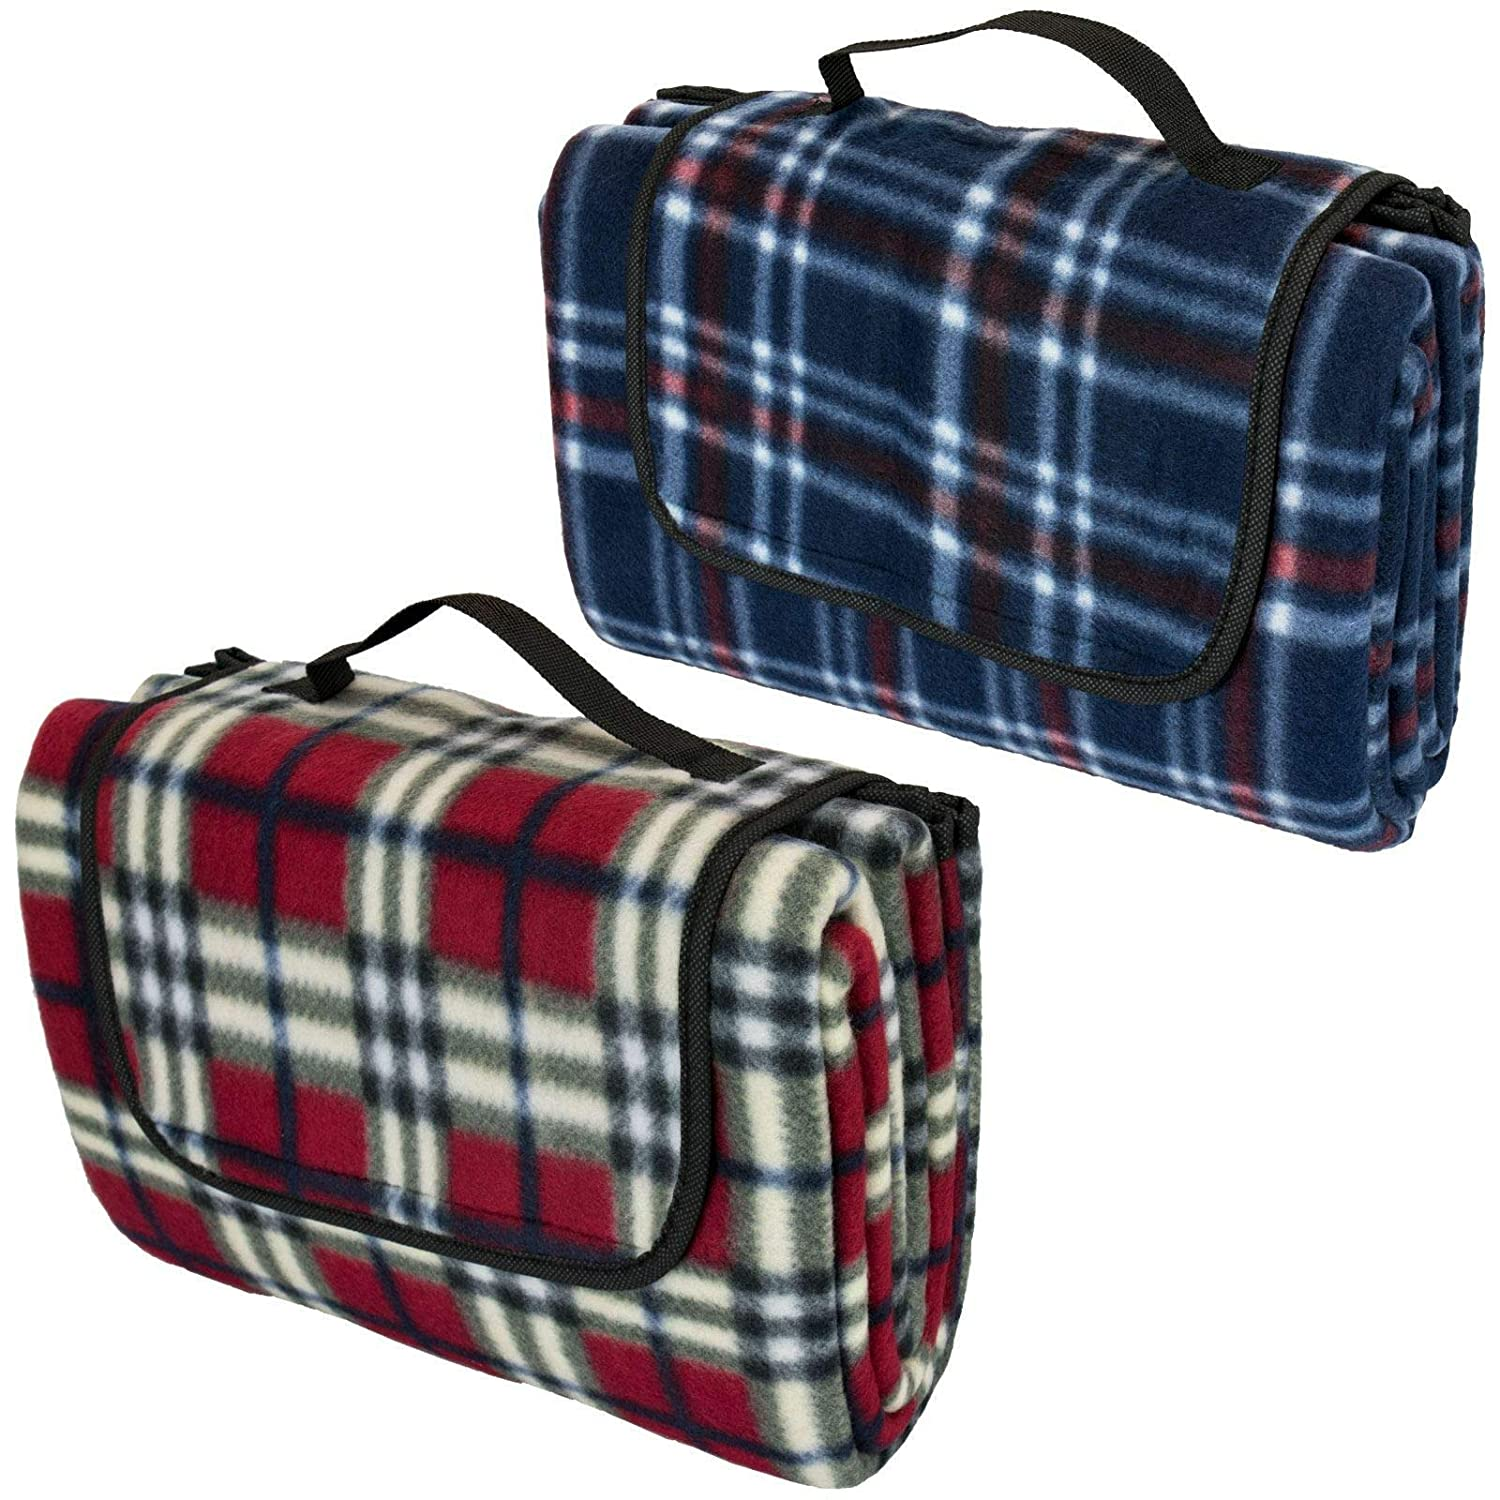 Red GLOW Folding Picnic Blanket Compact and Foldable with Carry Handle Ideal for Park BBQ Beach Home Garden Comfortable Large Padded Tartan Fleece Travel Camping Mat with Waterproof Backing